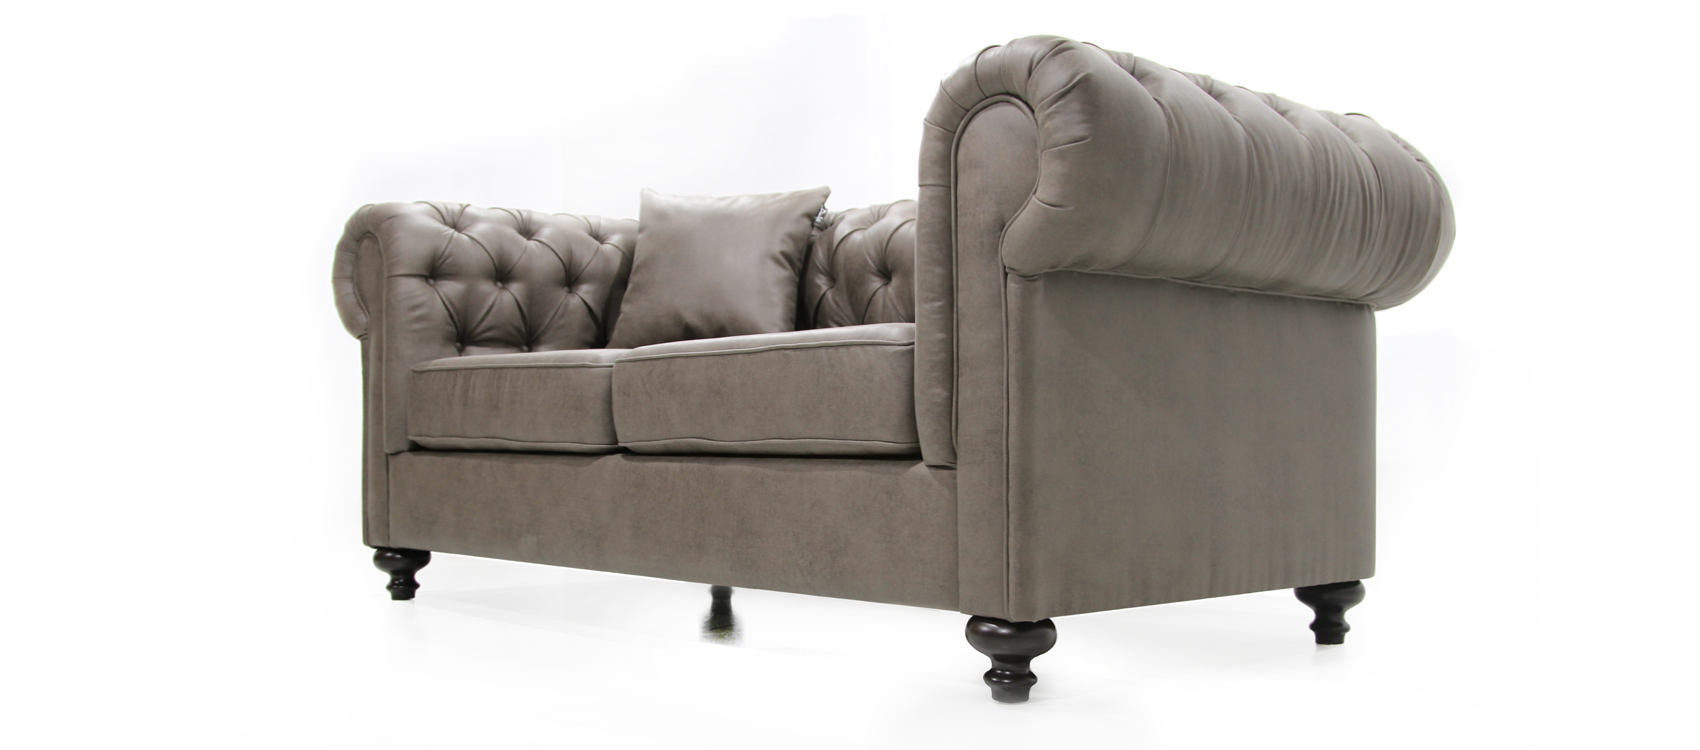 Sofa CHESTER 2 SEATER фото 8